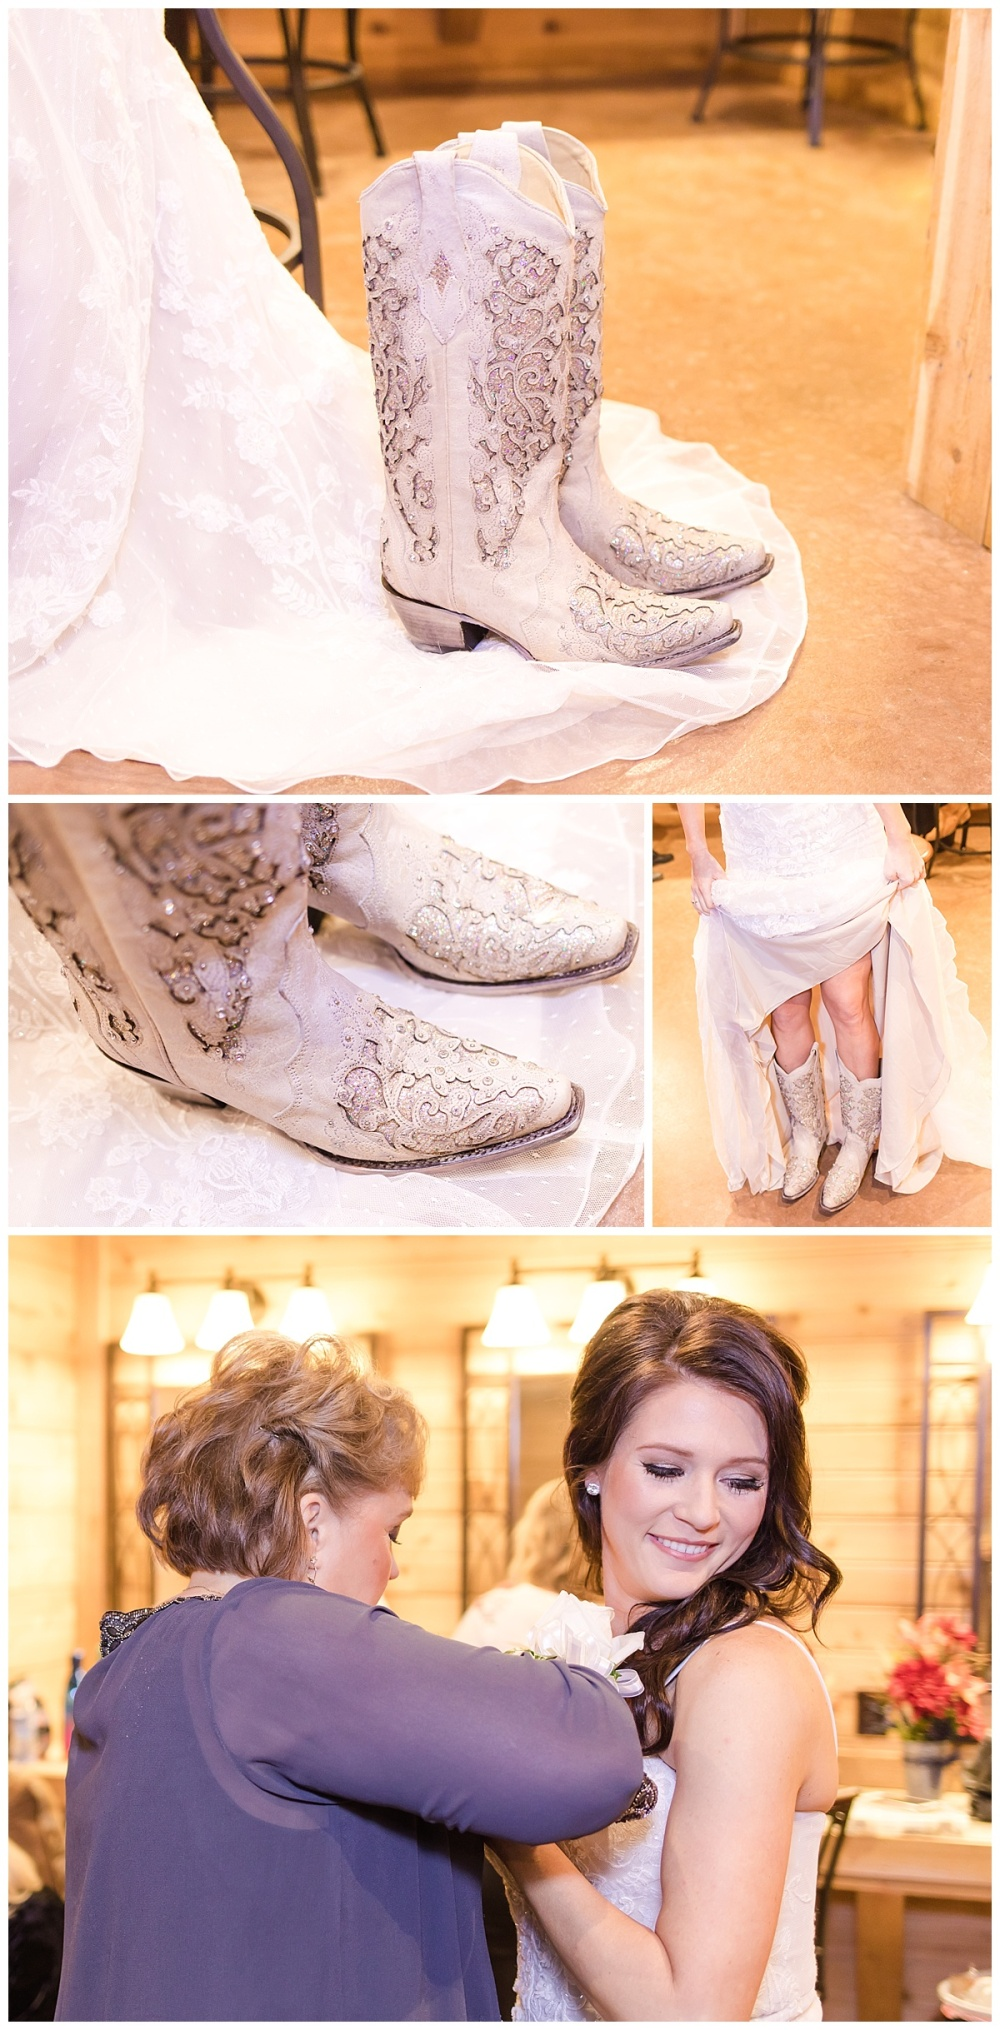 Carly-Barton-Photography-Geronimo-Oaks-Wedding-Venue-Texas-Hill-Country-Ronnie-Sarah_0081.jpg